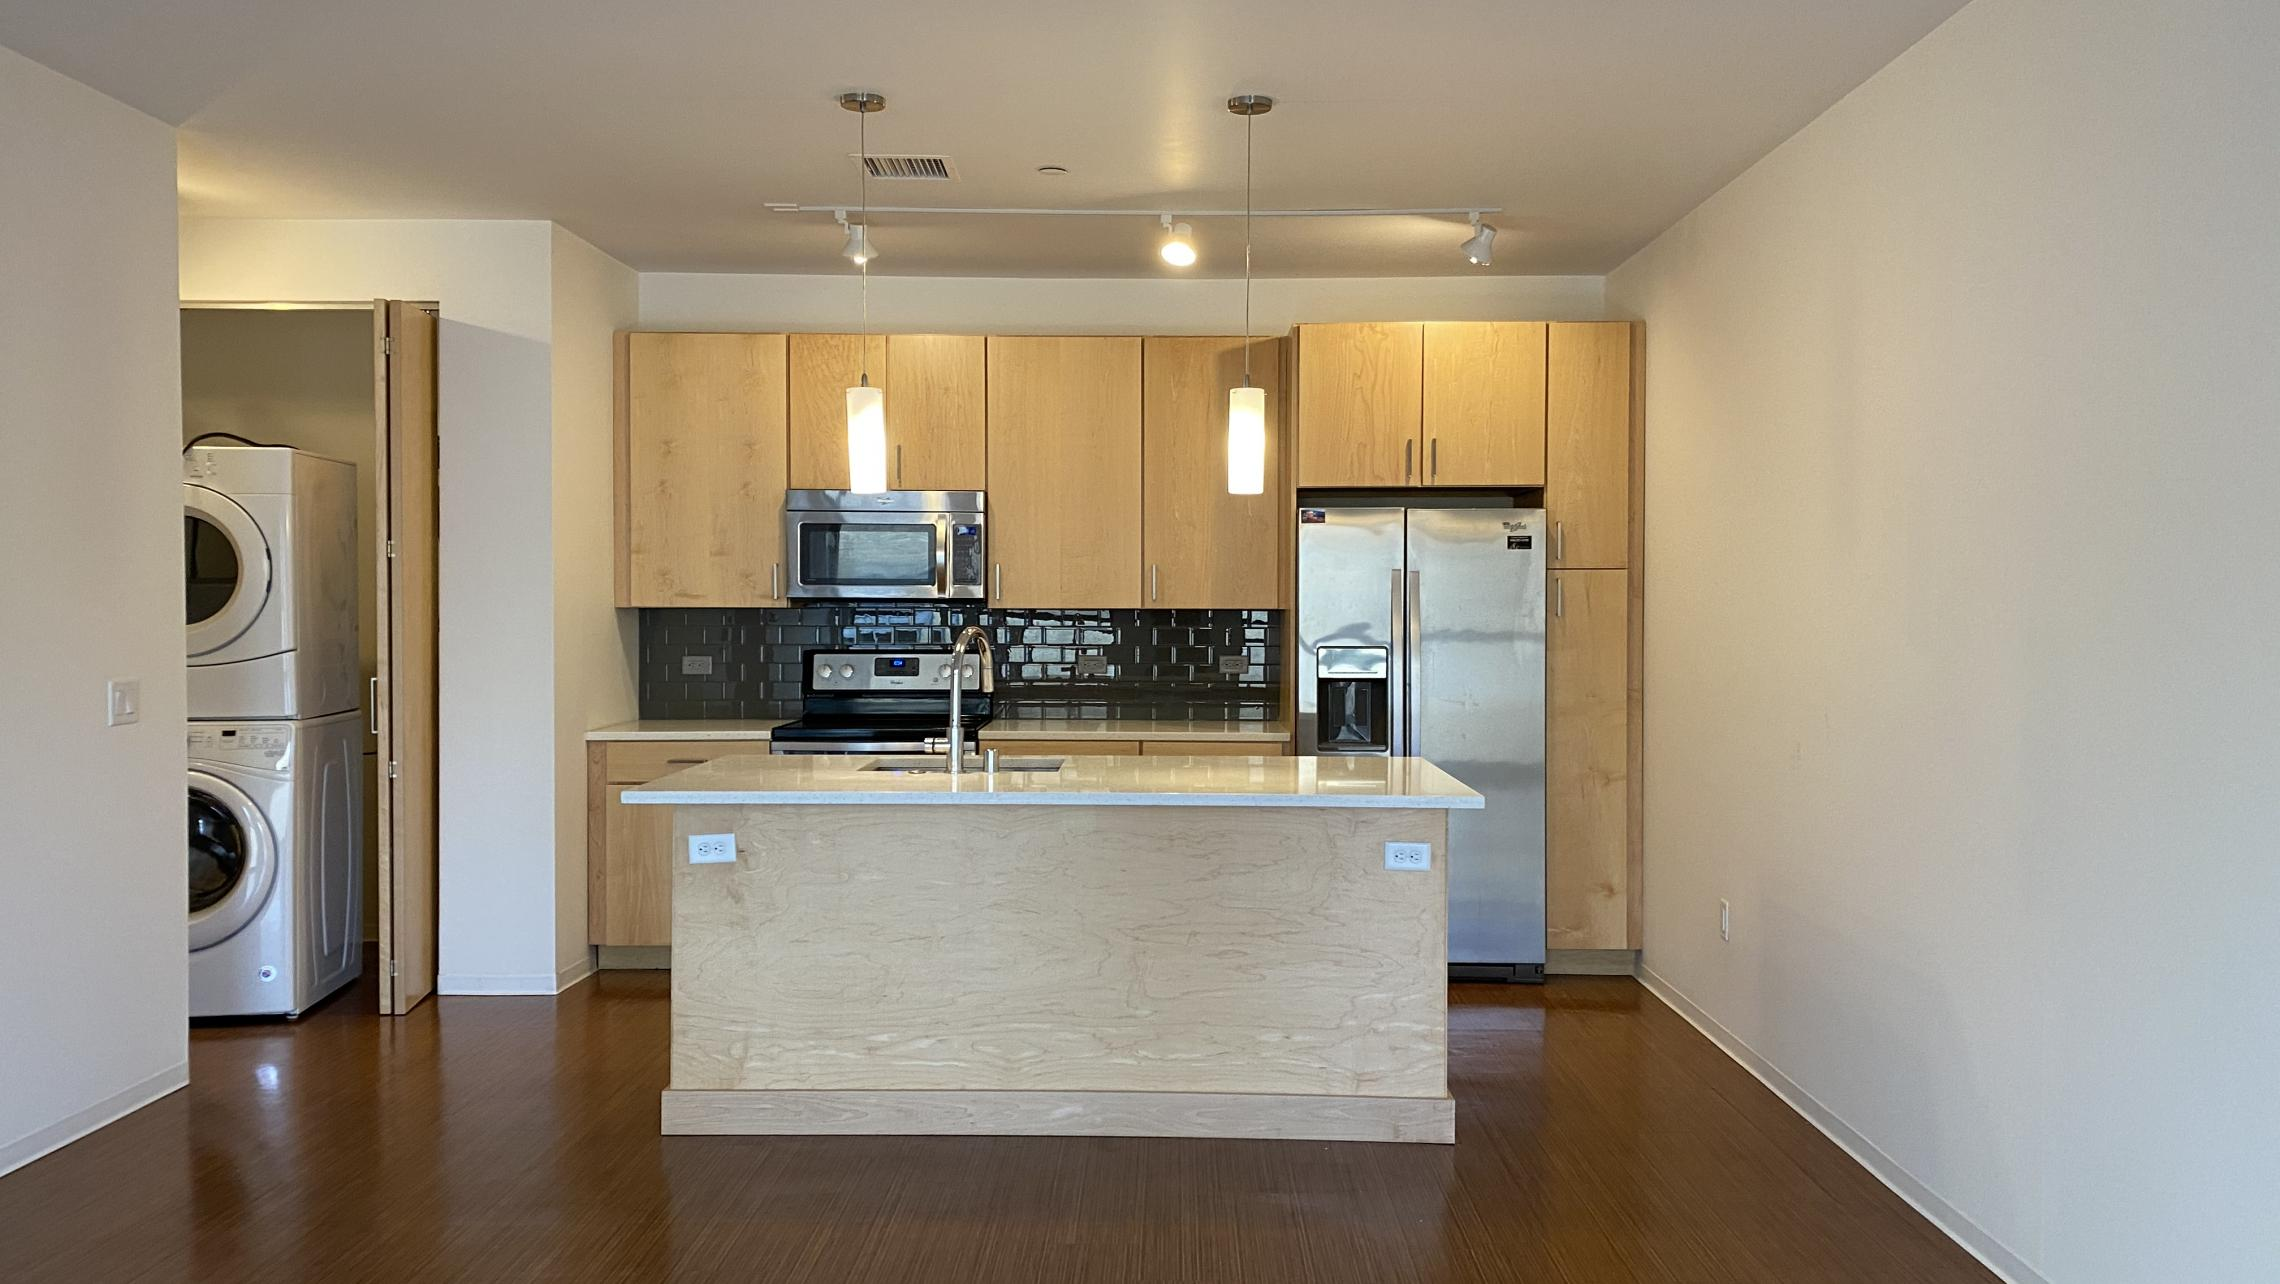 SEVEN27-Apartment-218-One-Bedroom-The-Yards-Modern-Upscale-Design-Luxury-Fitness-Courtyard-Lougne-Pets-Living-Kitchen-Downtown-Madison-Lake-Capitol-Lifestyle